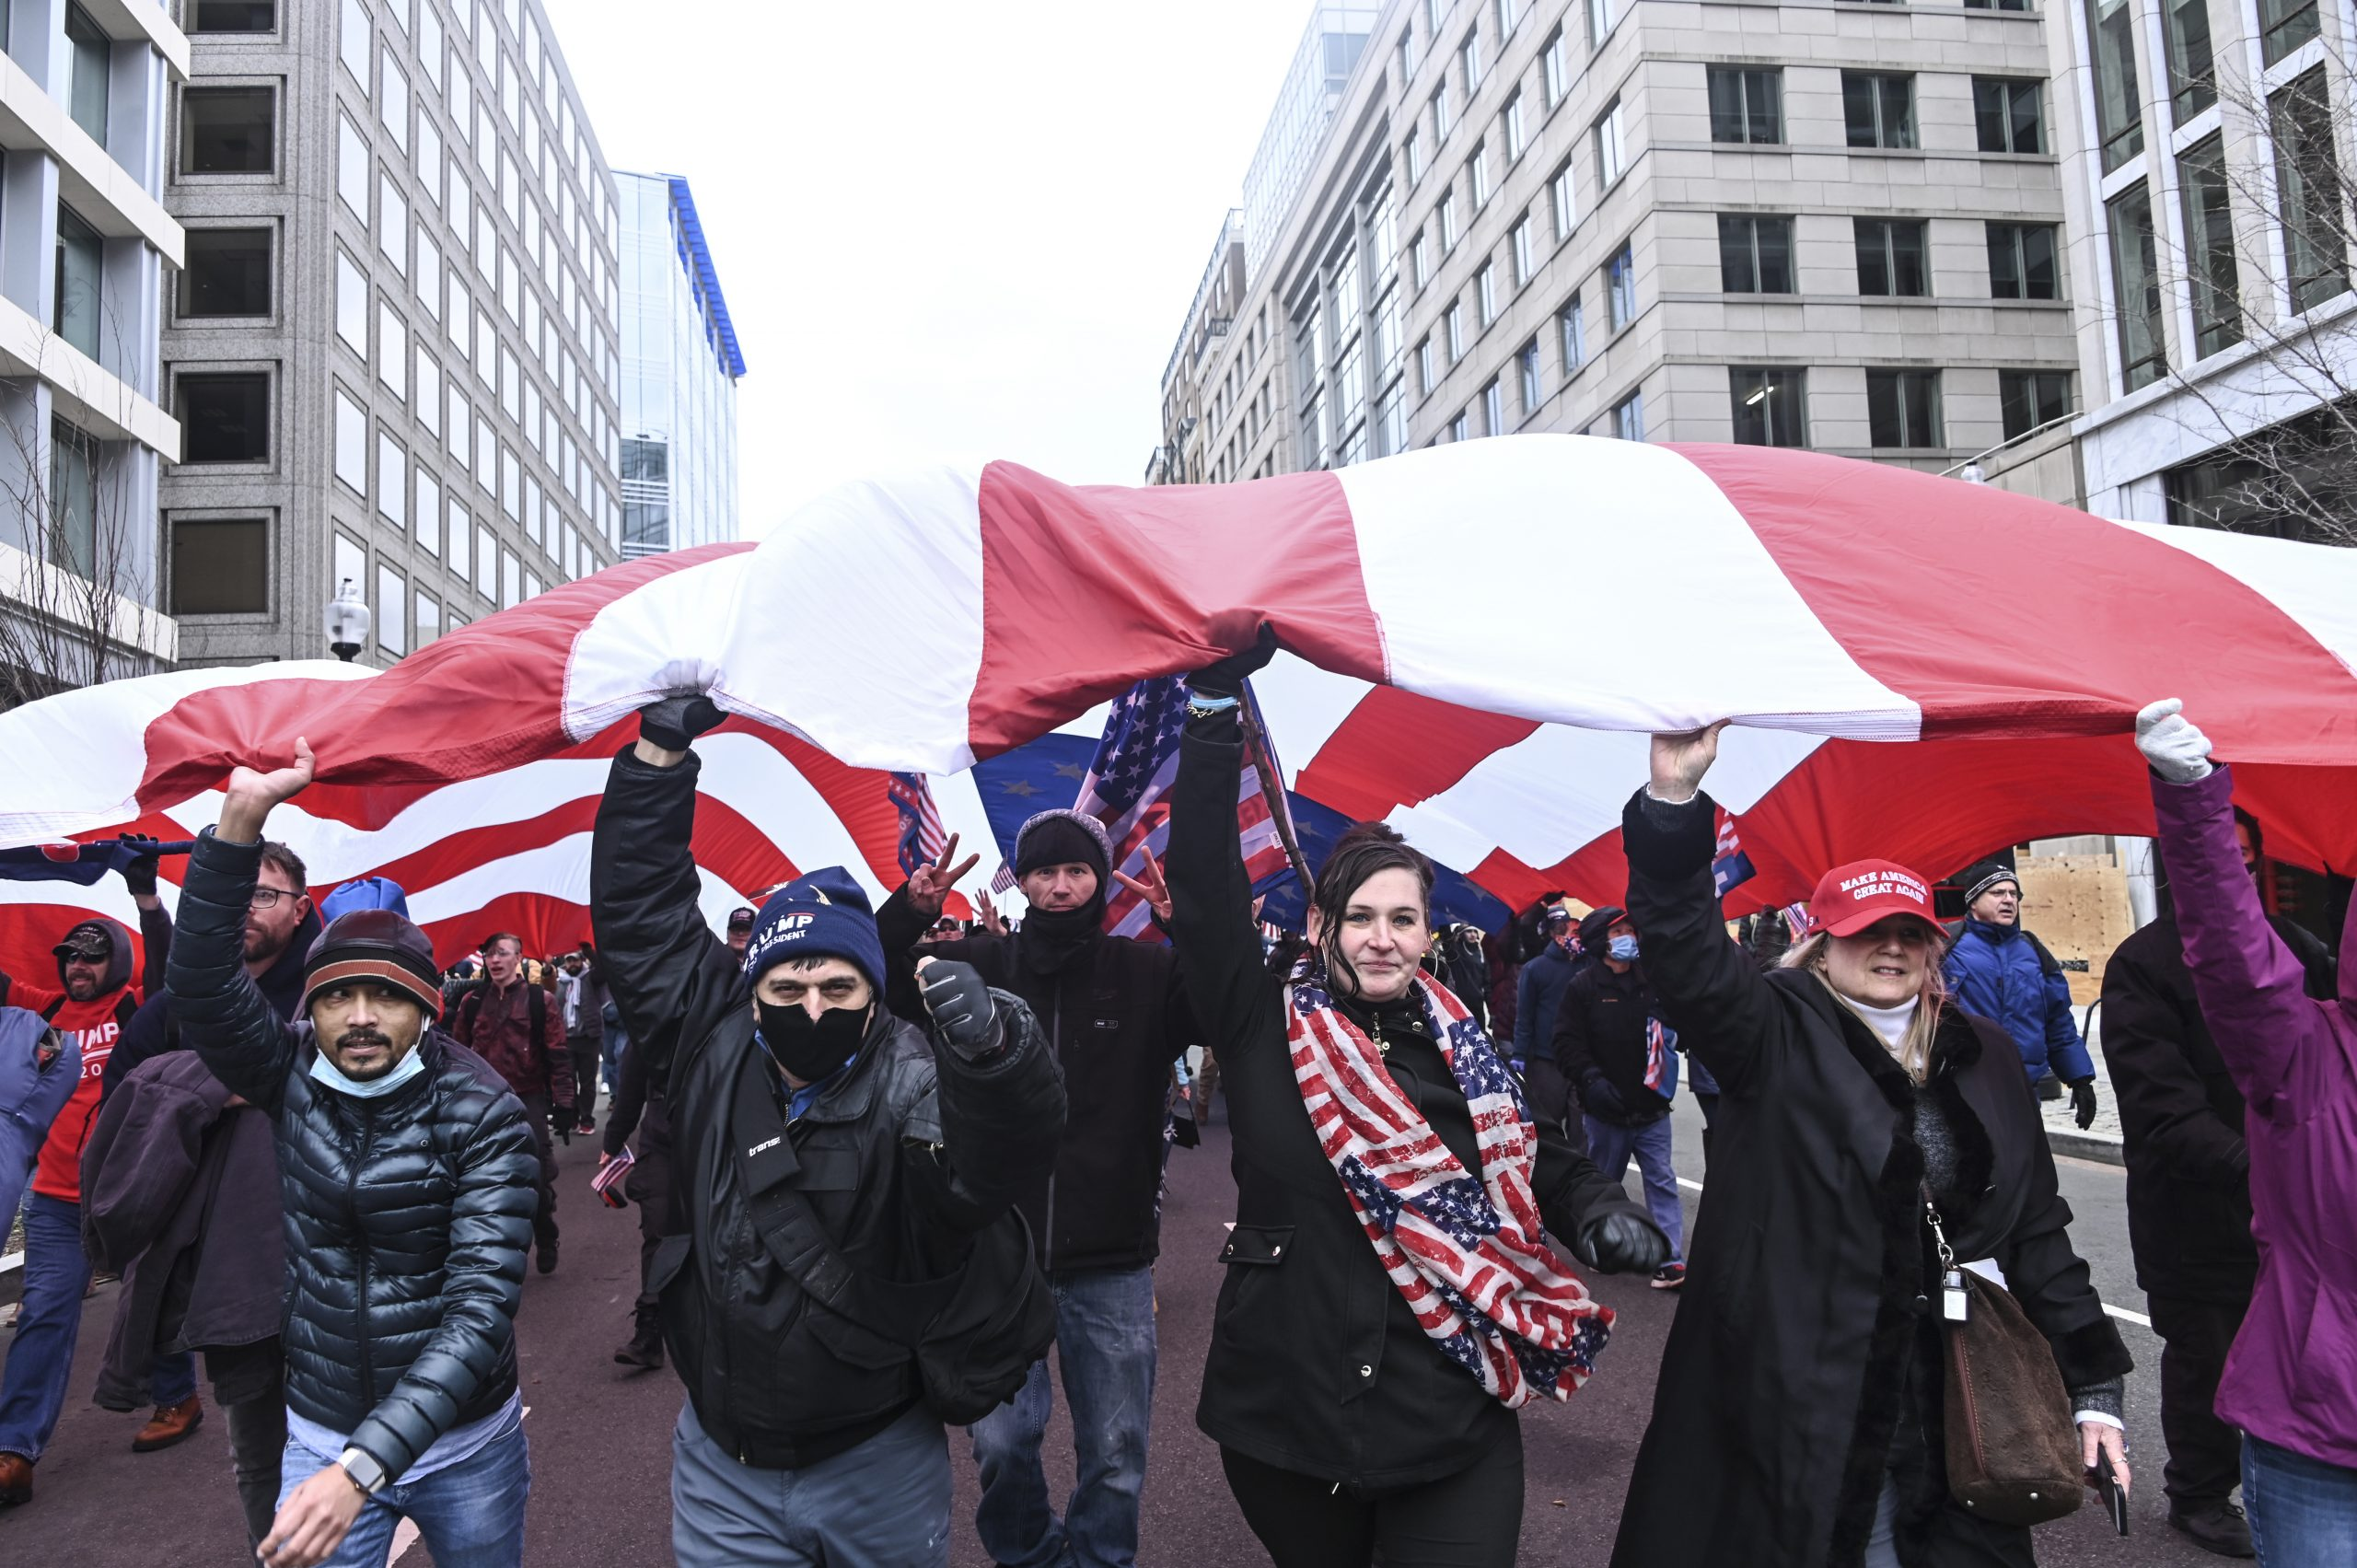 Trump supporters march with a massive American flag in front of Black Lives Matter Plaza.